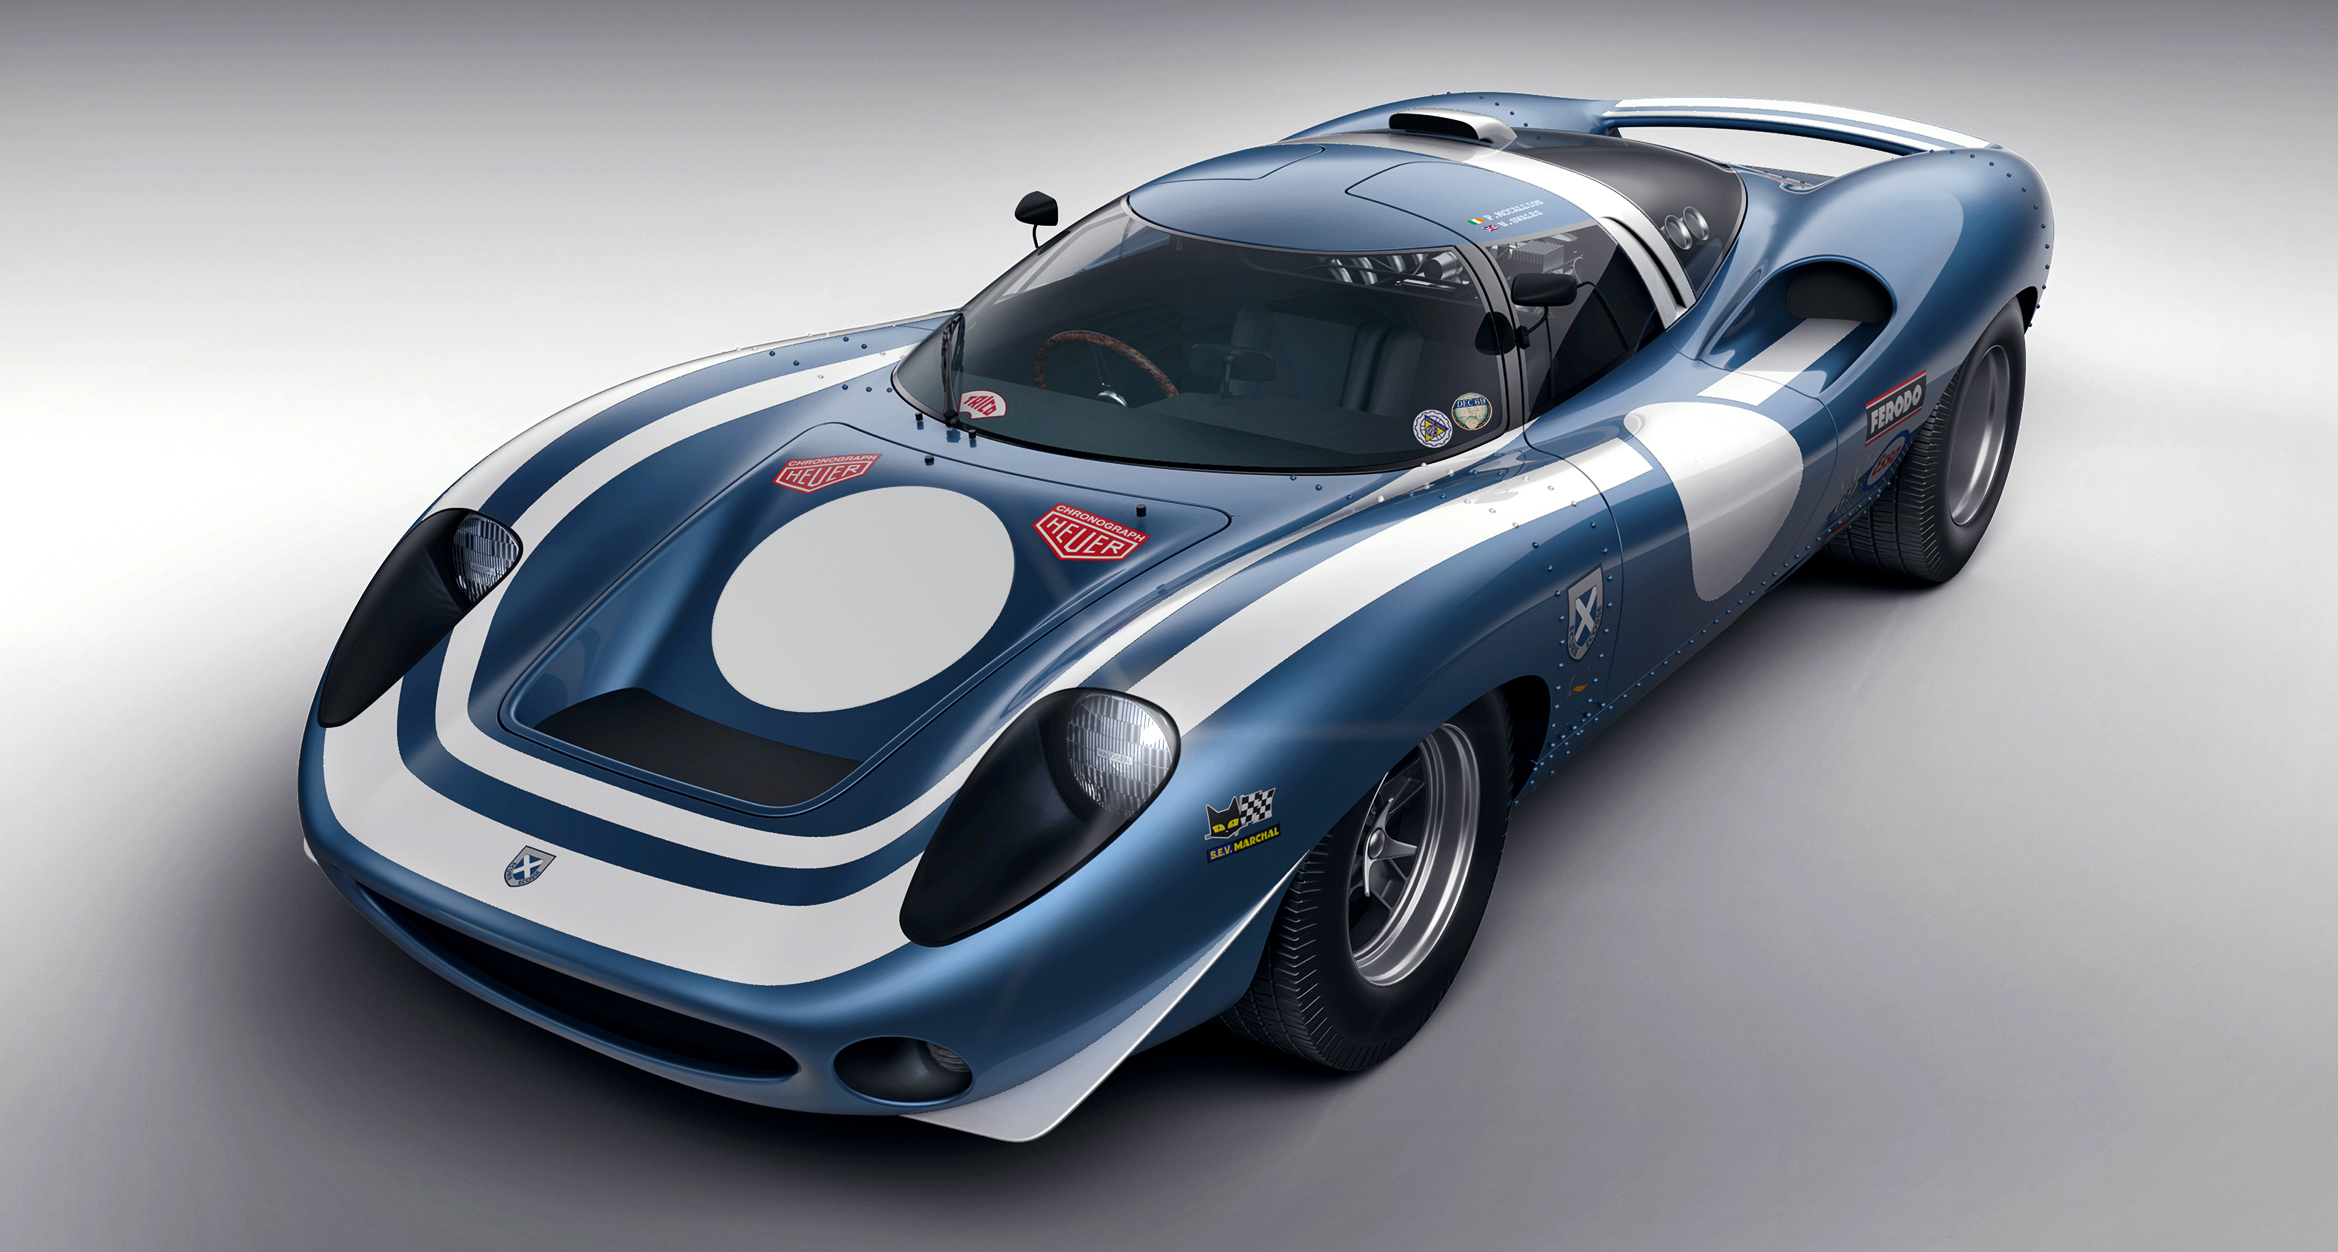 The Ecurie Ecosse LM69